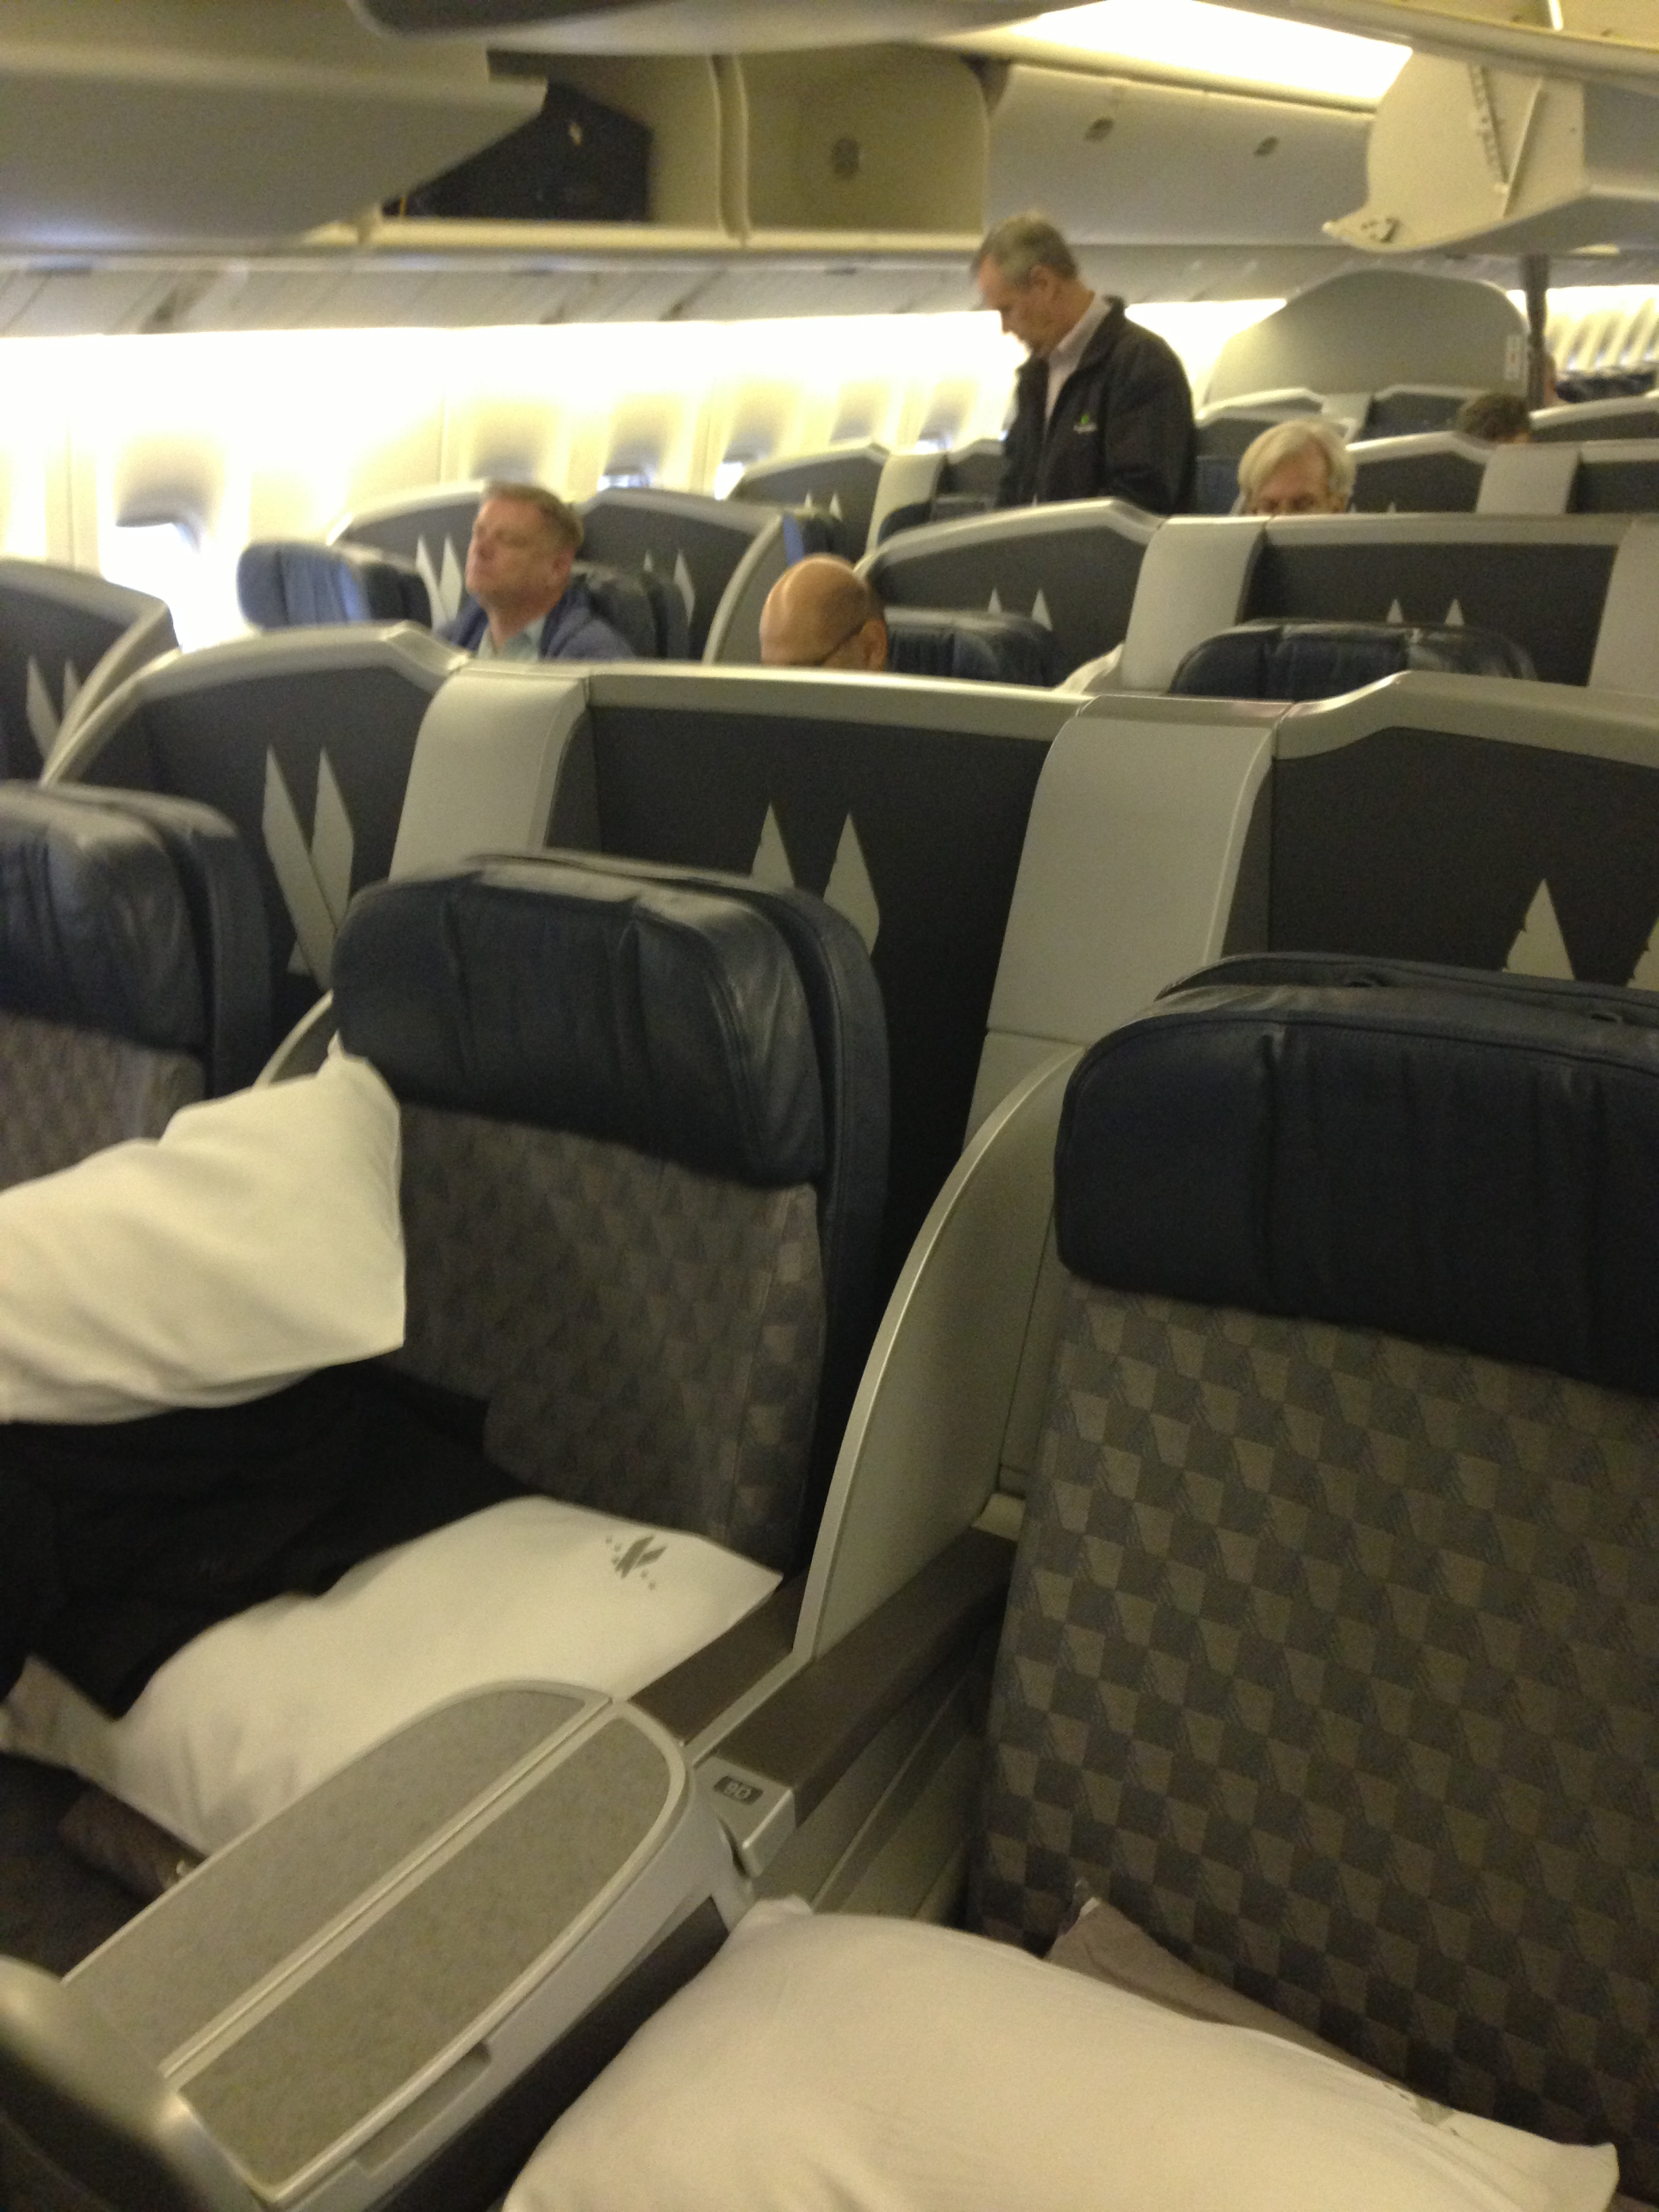 American Airlines Pvg Ord 777 200 Business Class Points Summary,Bathroom Floor Design Ideas